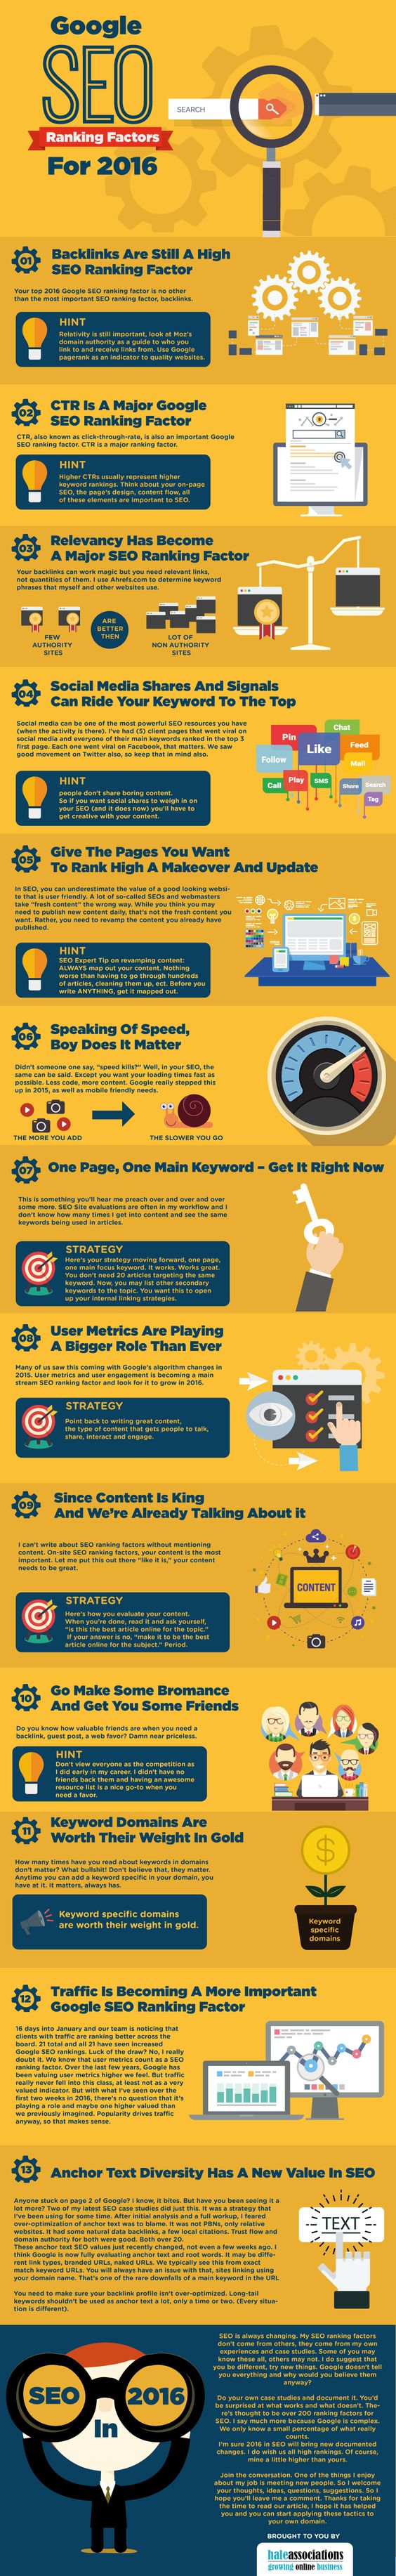 Google SEO Ranking Factors for 2016 #Infographic #WebDevelopment #Website #Ranking